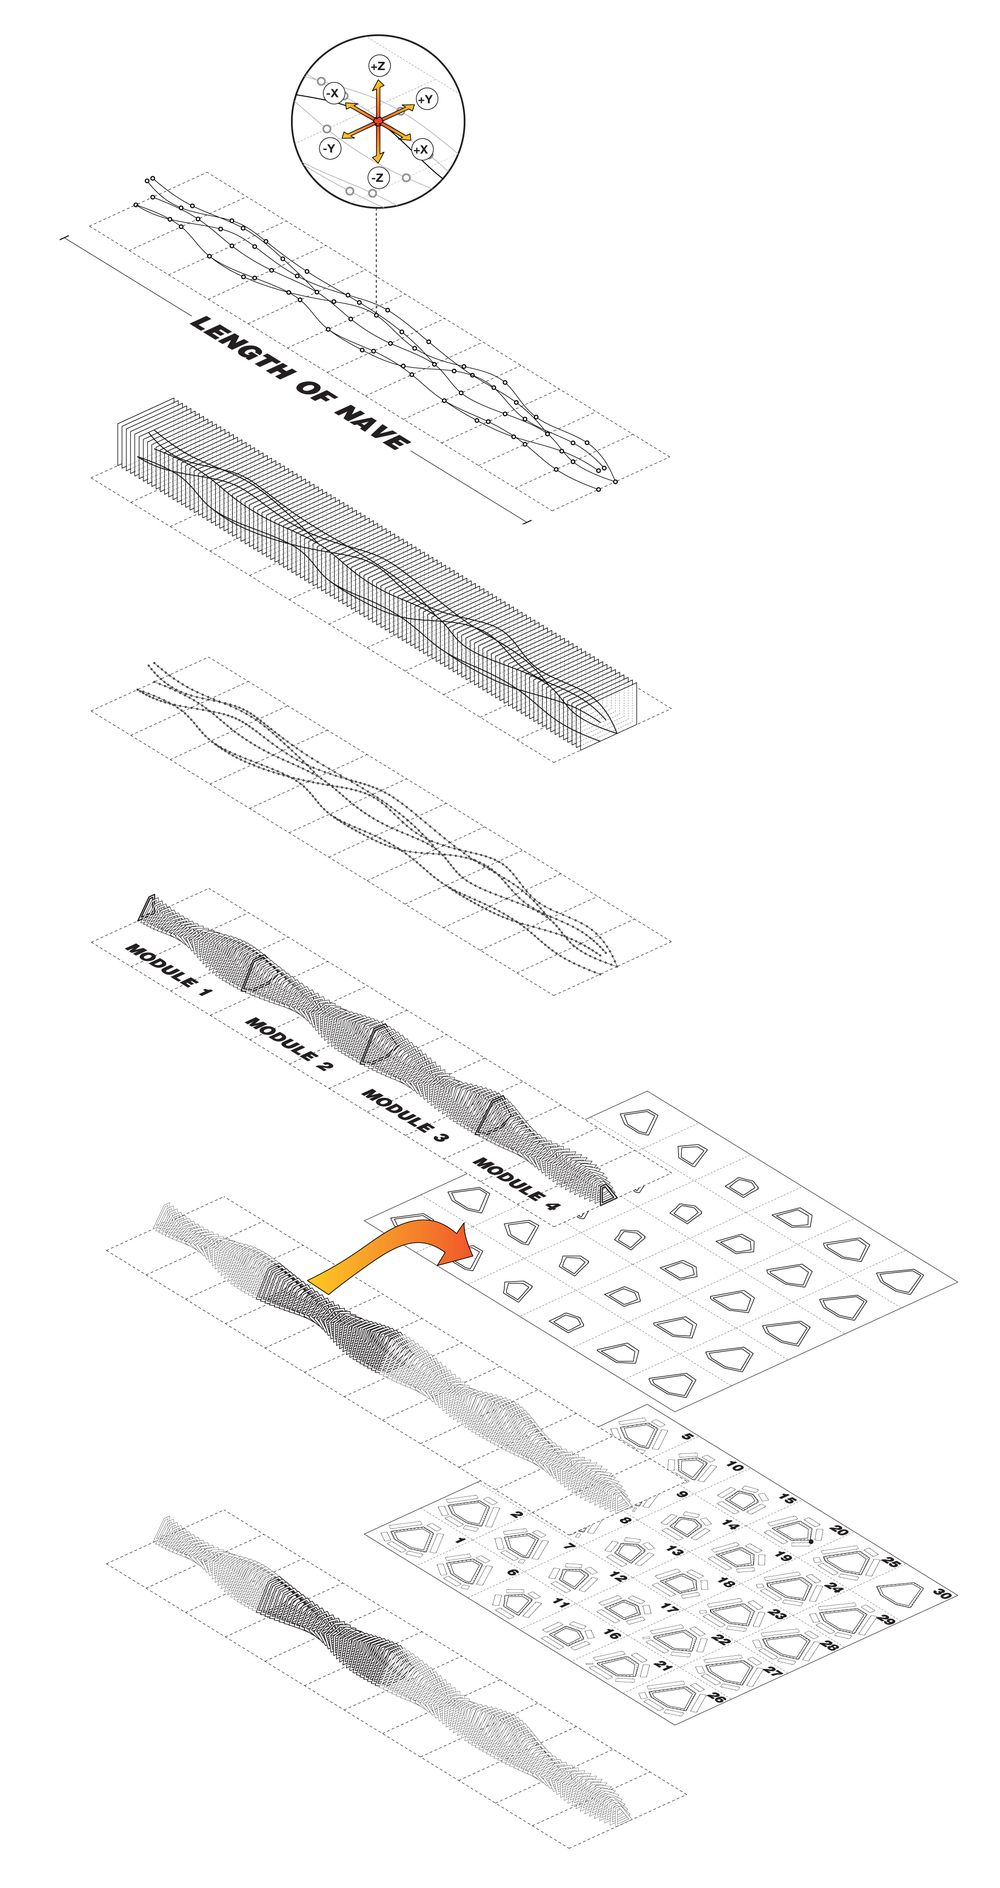 The six steps above illustrate the parametric logic behind the Grasshopper definition that was used to generate all of the vertical MDF (medium density fiber-board) ribs and horizontal HDPE (high density polyethylene) panels for the armature.  Every section of the installation  is unique and numbered in sequence, allowing the installation to be easily assembled or disassembled in less than 3 hours per module.